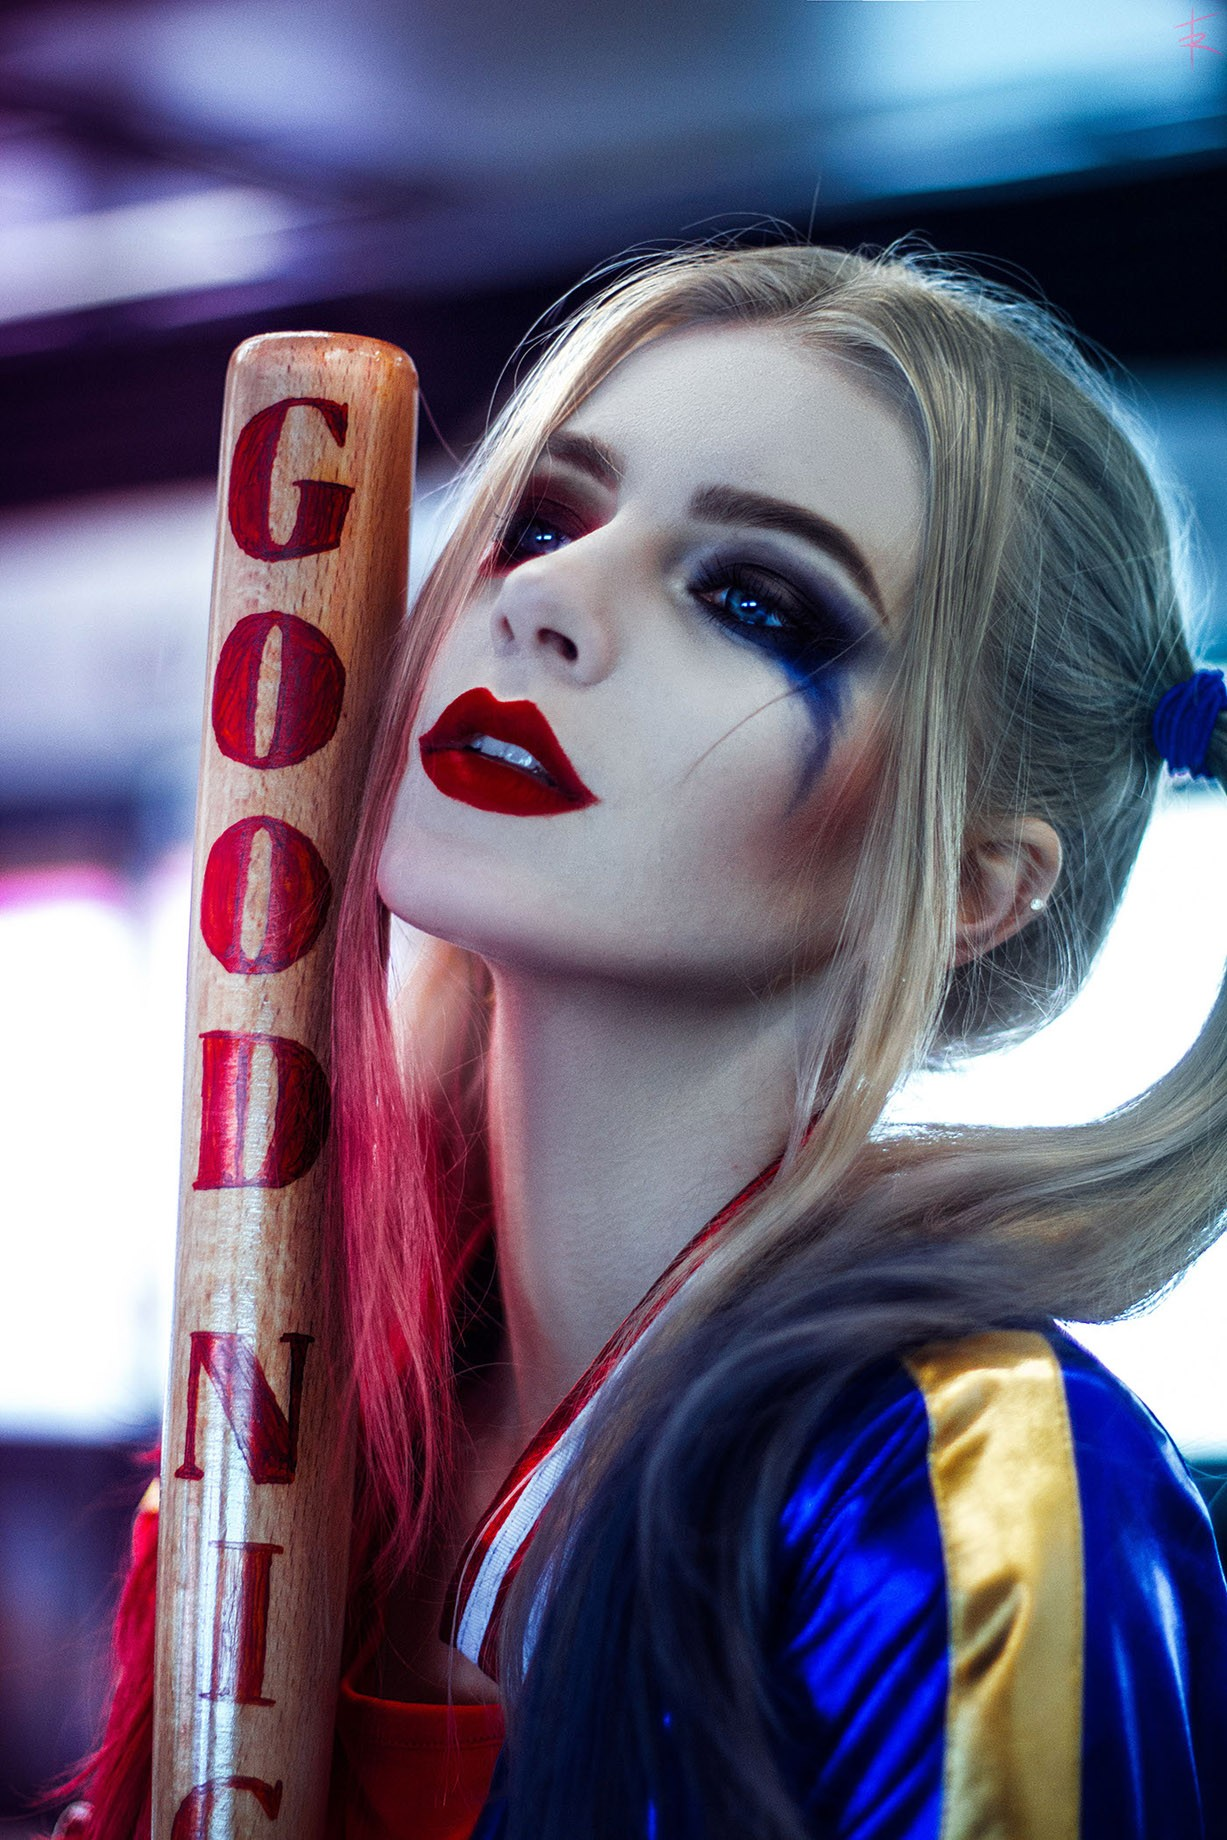 Katie Kosova as Harley Quinn by Tim Rise